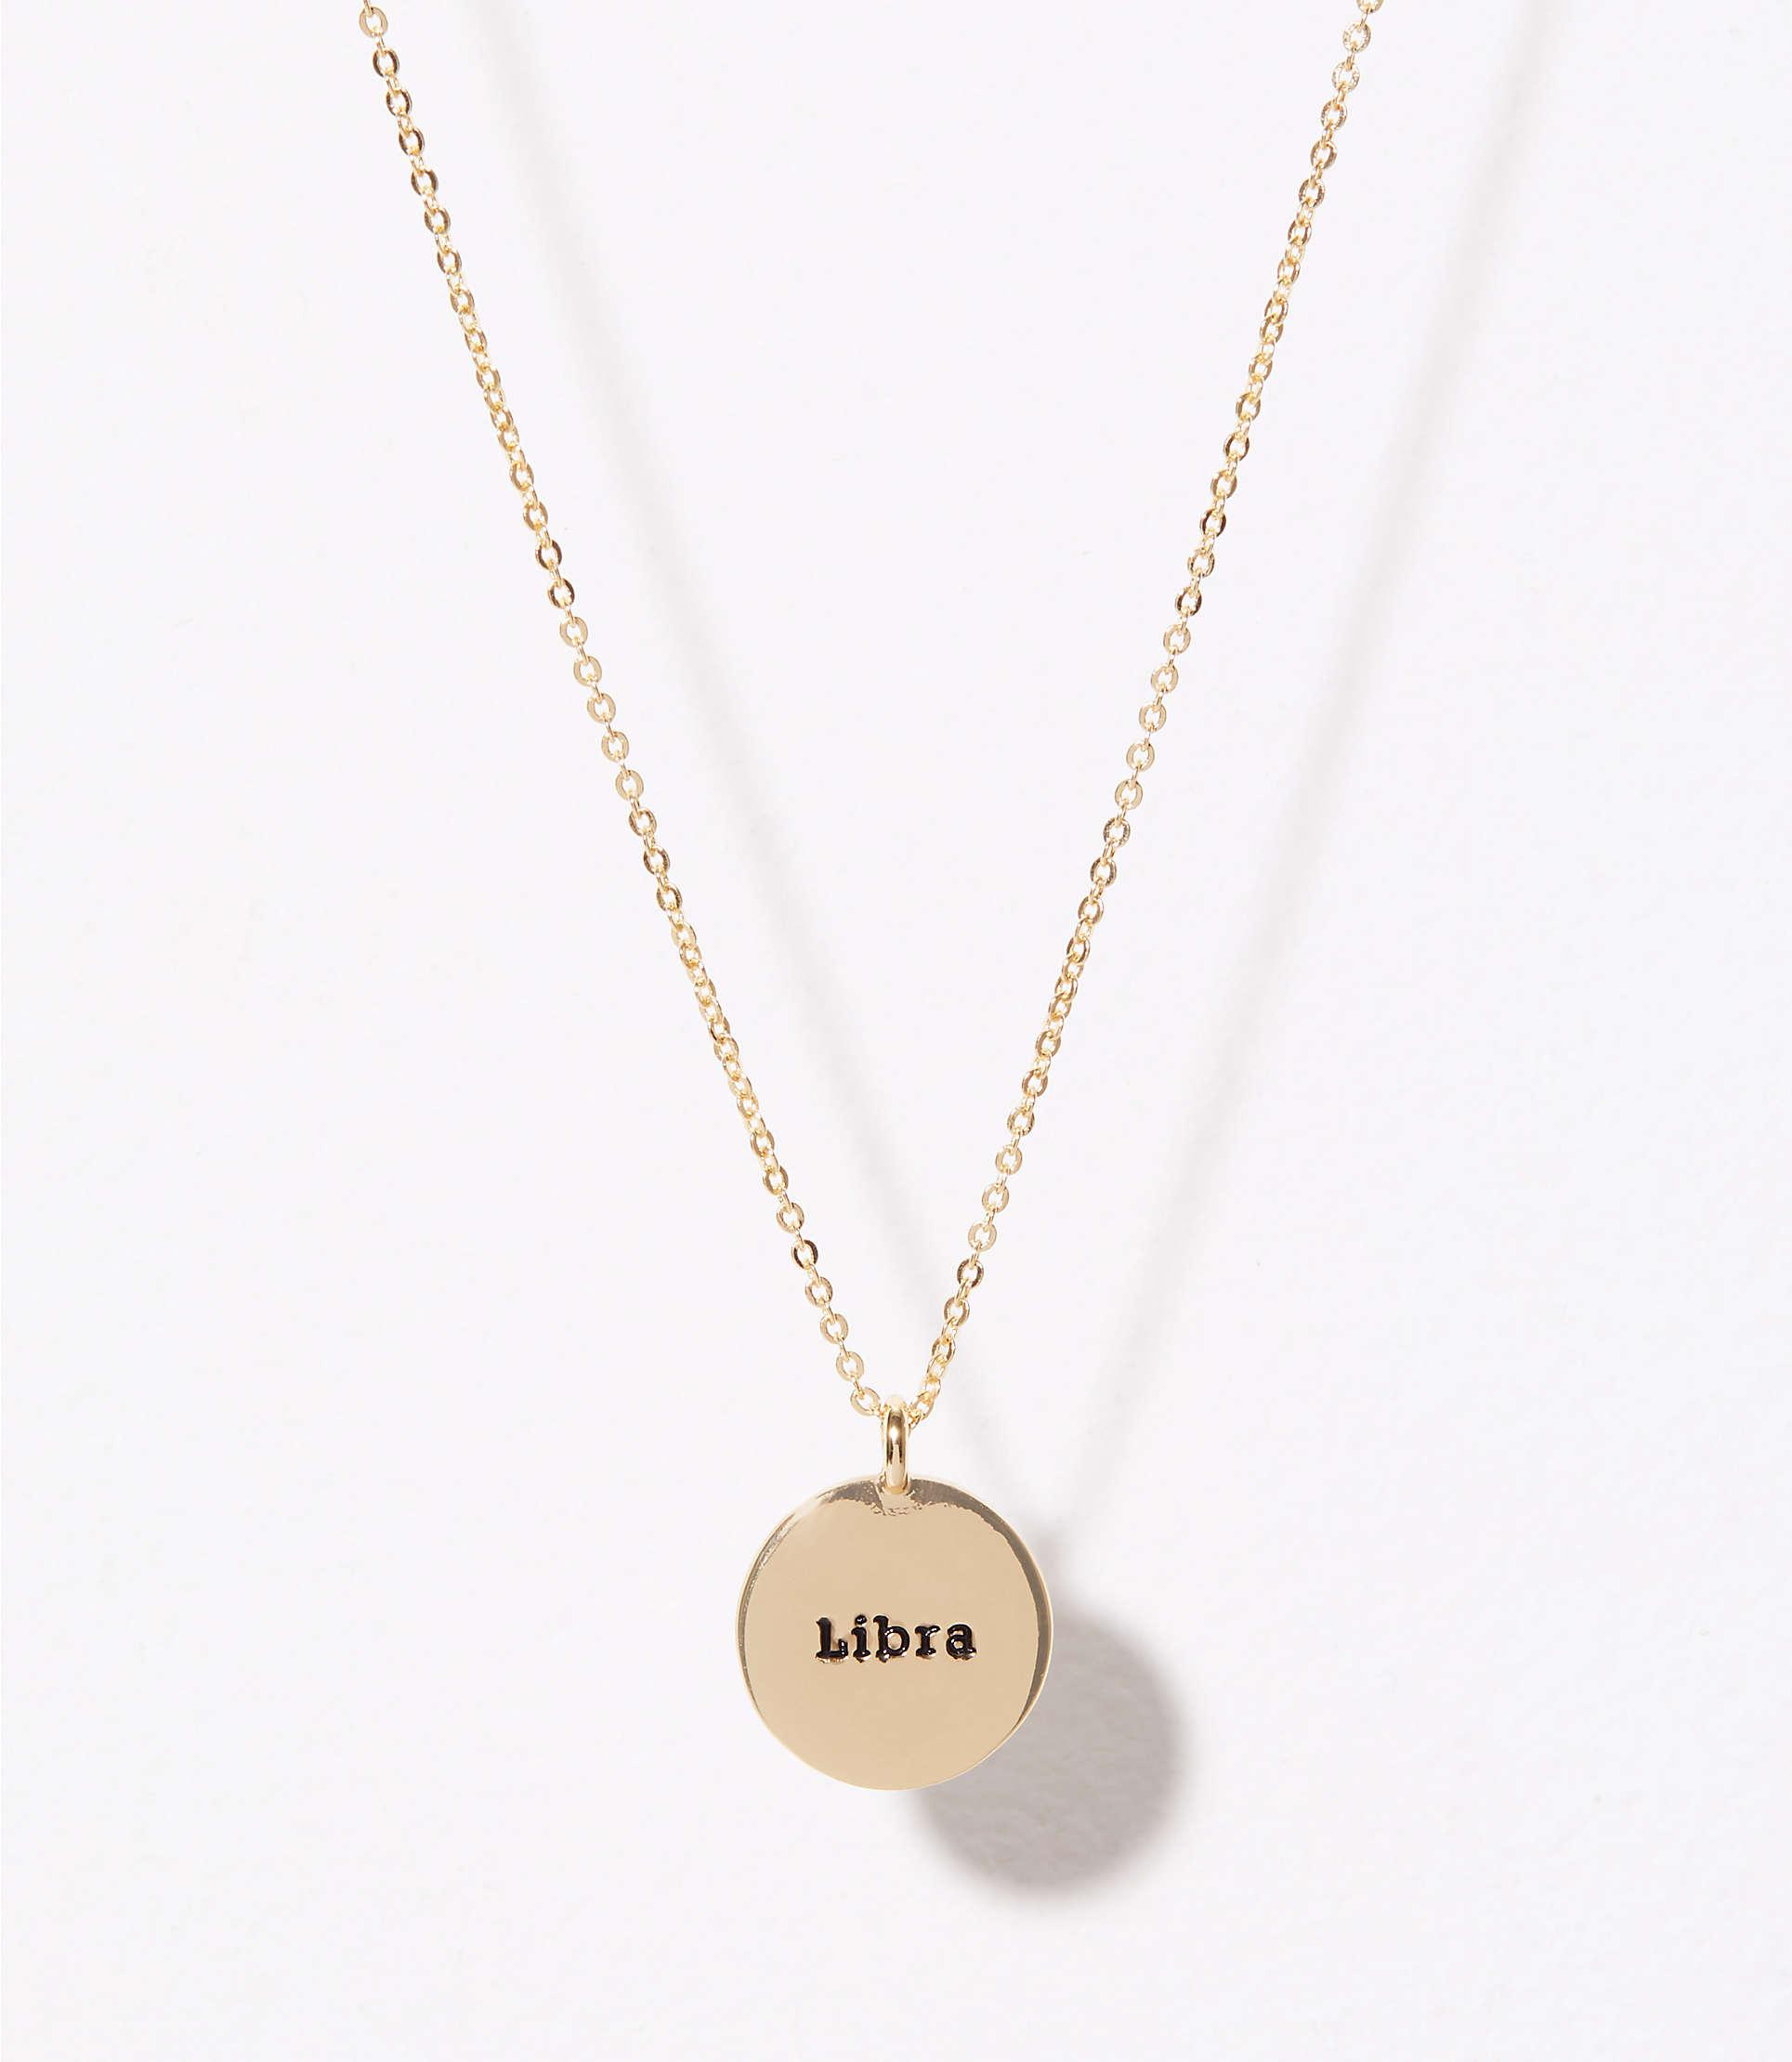 gold tous derniers arrivages libra fr colour warehouse les horoscope necklace